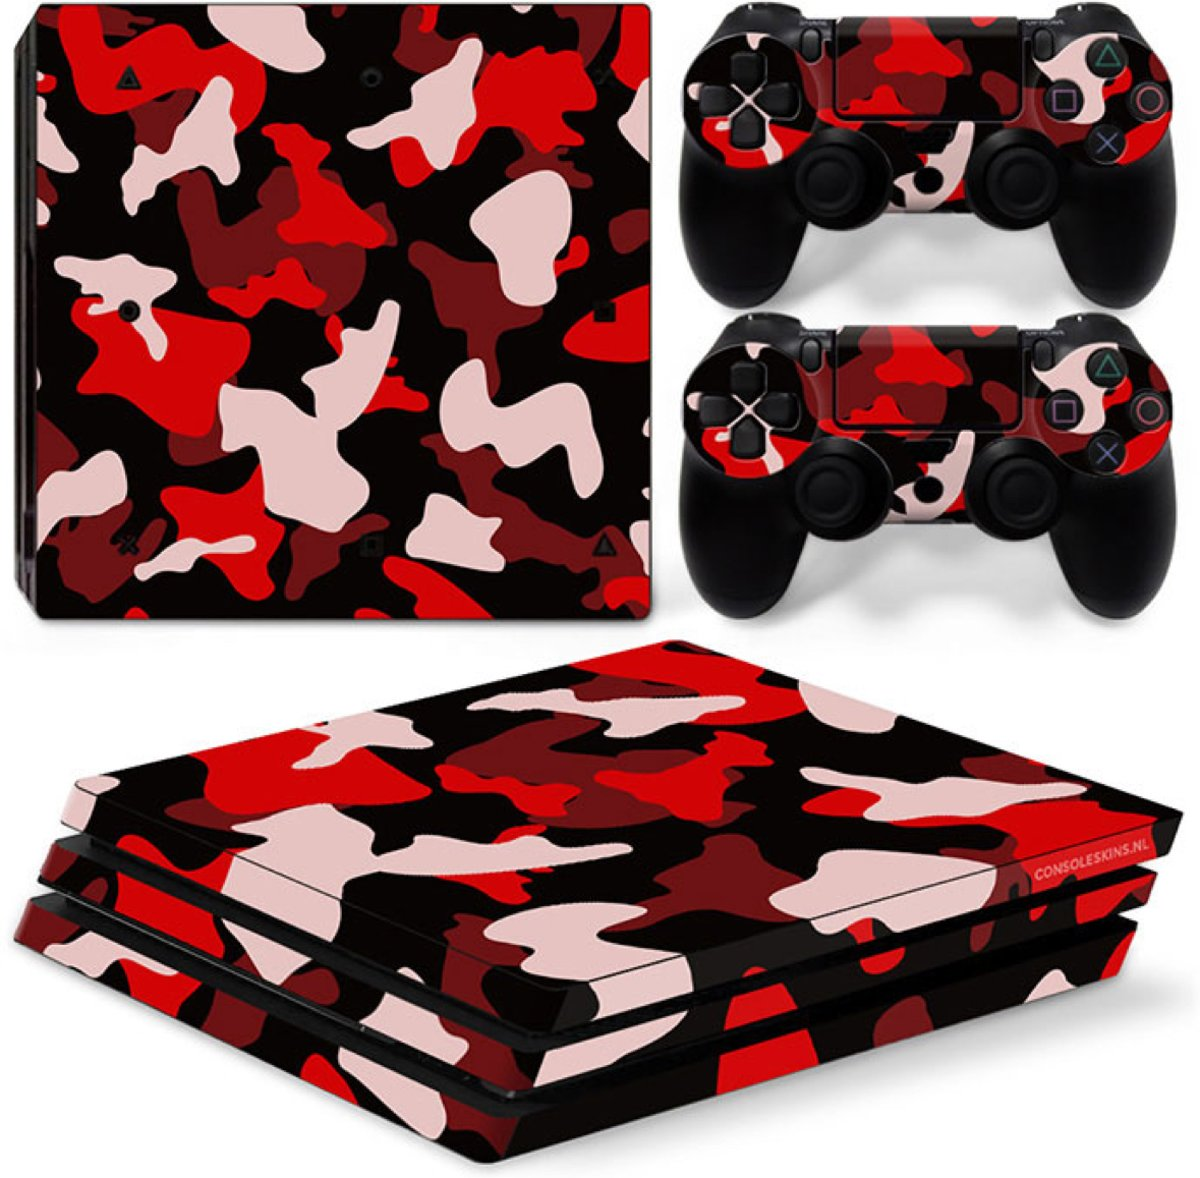 Army Camo / Rood Zwart - PS4 Pro Console Skins PlayStation Stickers